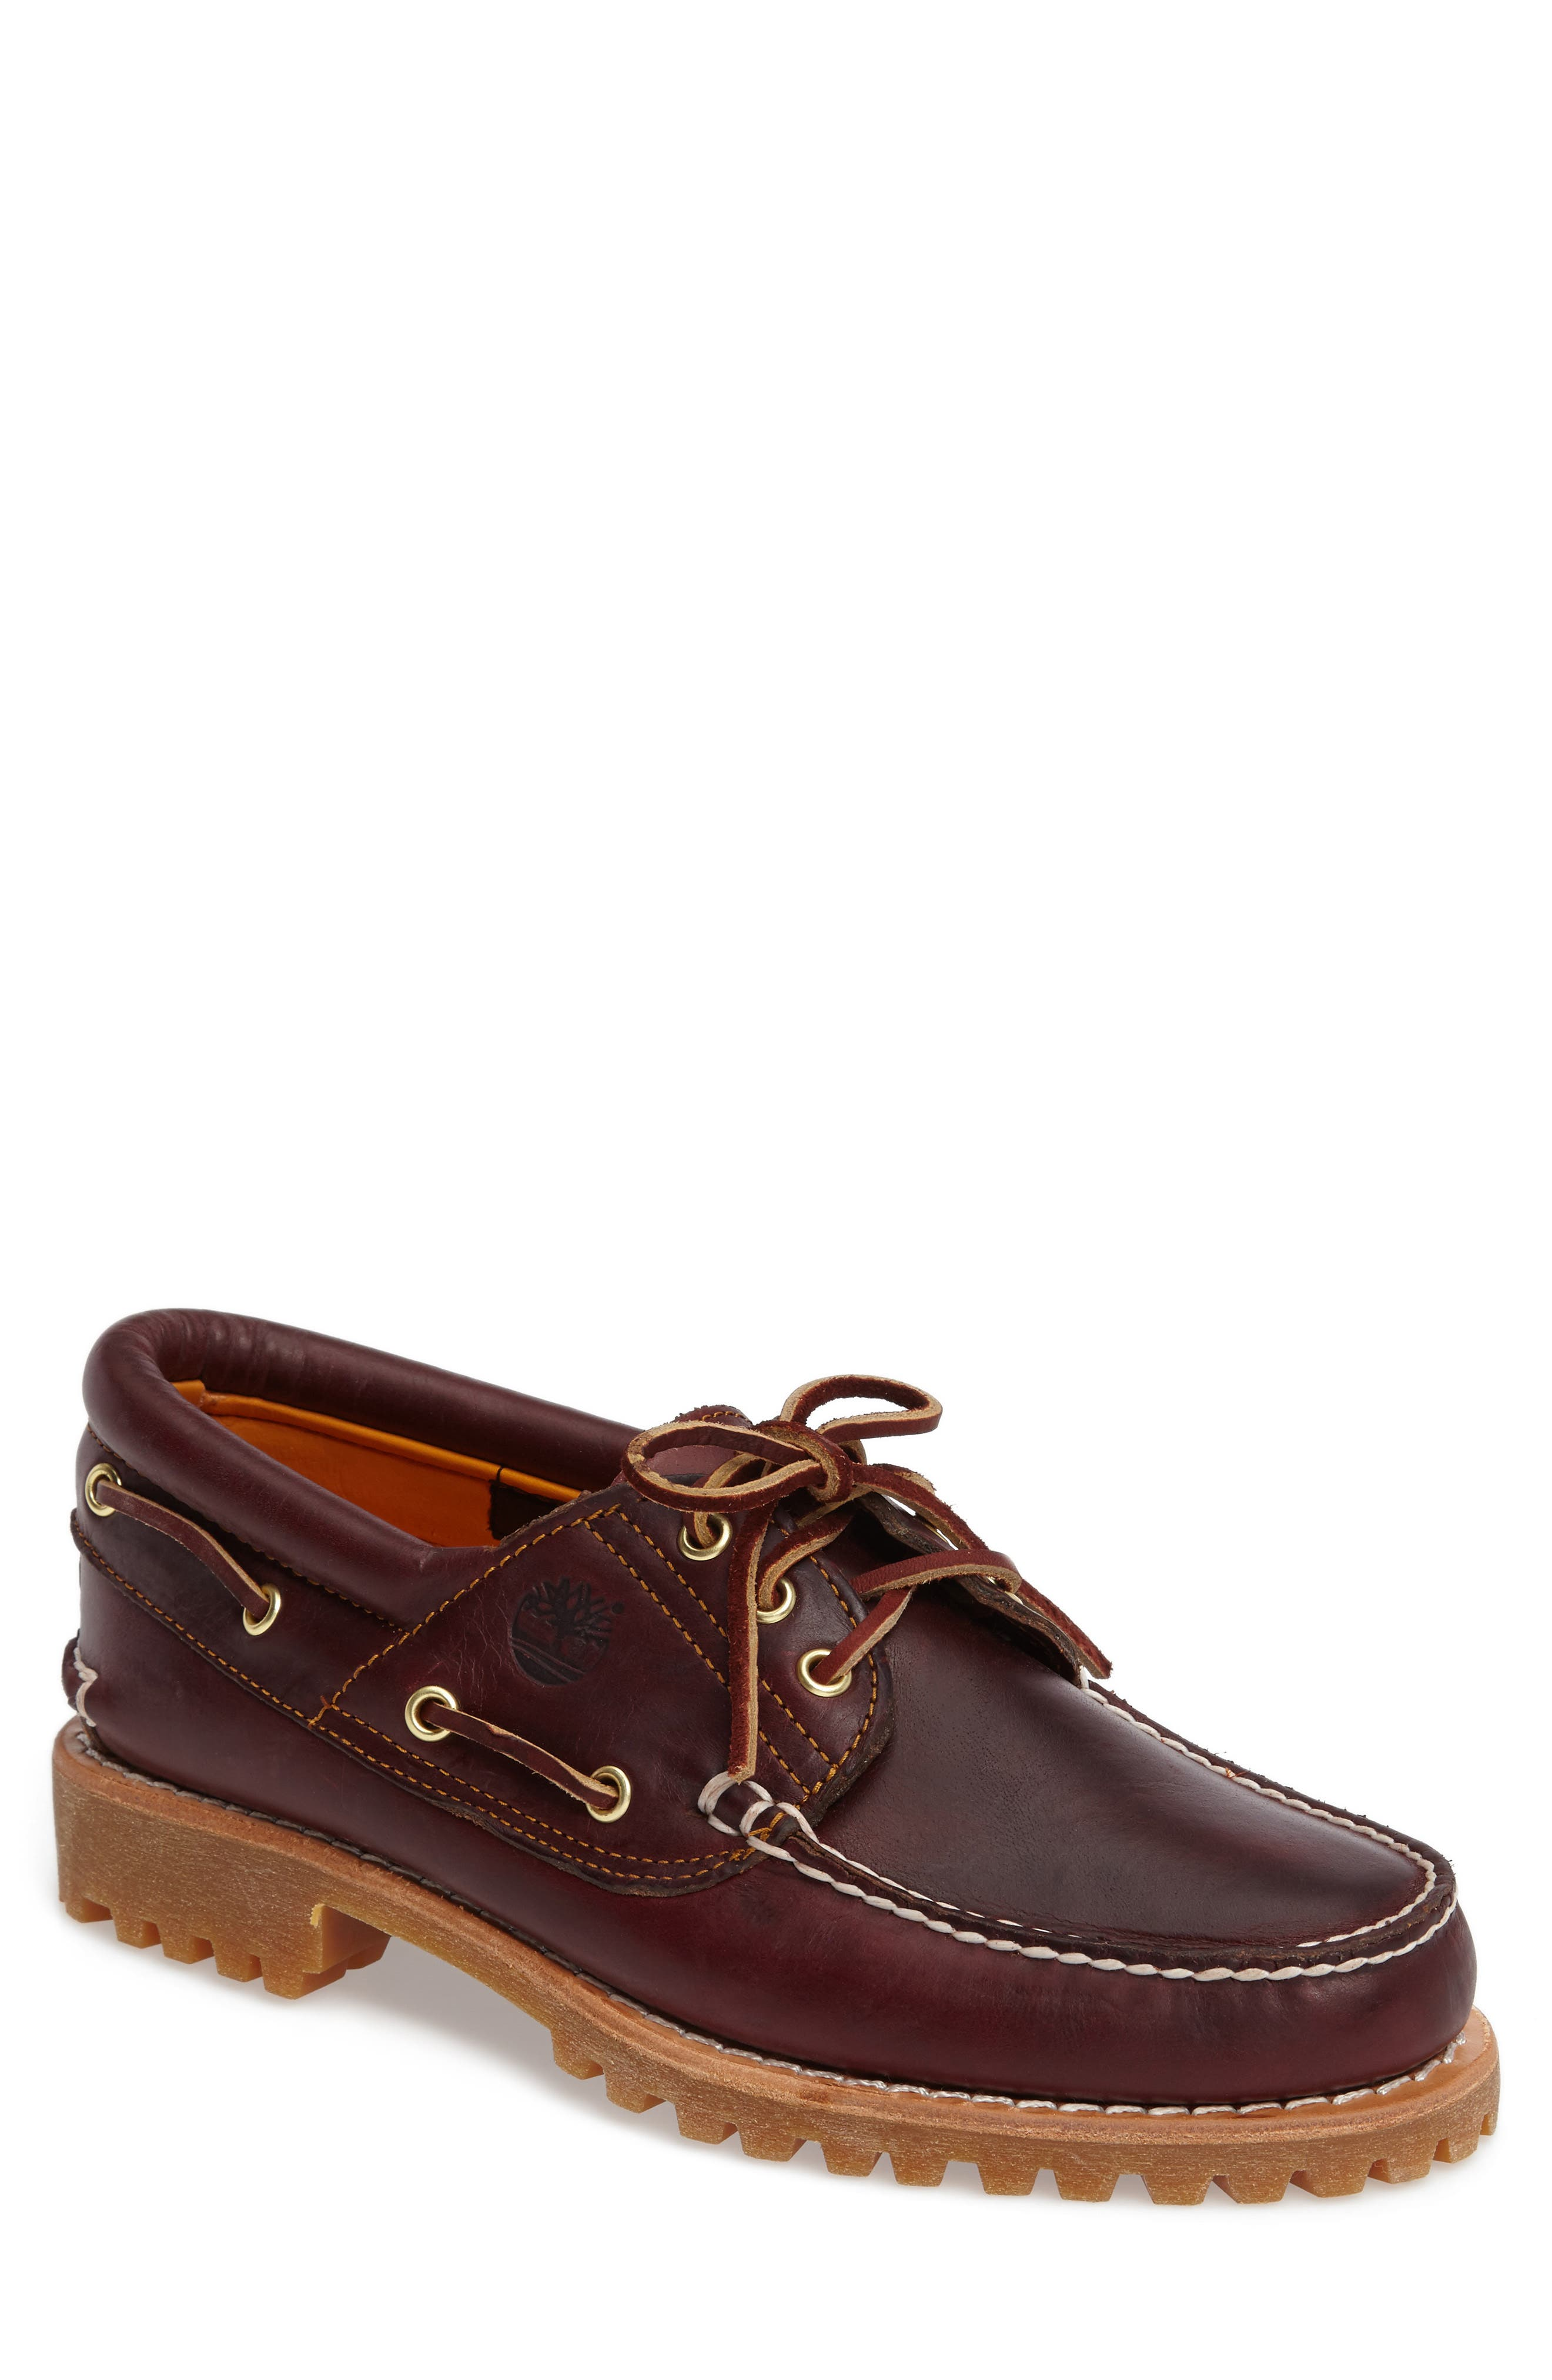 TIMBERLAND Authentic Boat Shoe